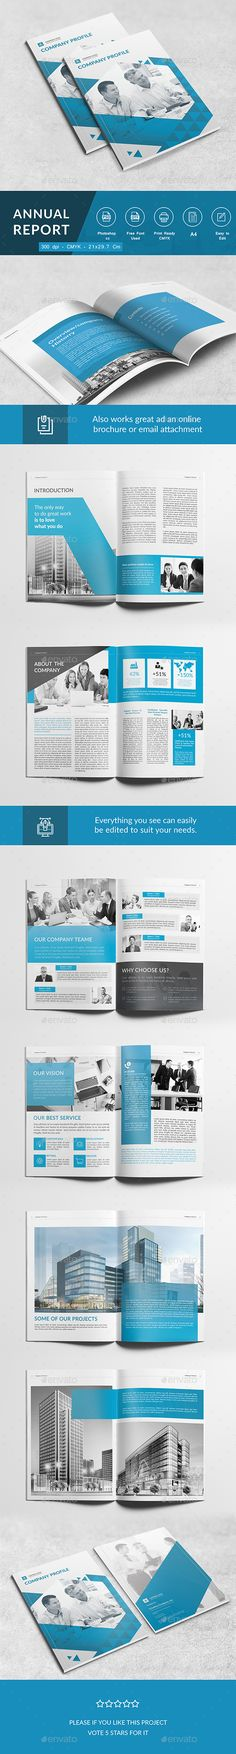 The Company Profile Brochure Template InDesign INDD Download here - corporate profile template